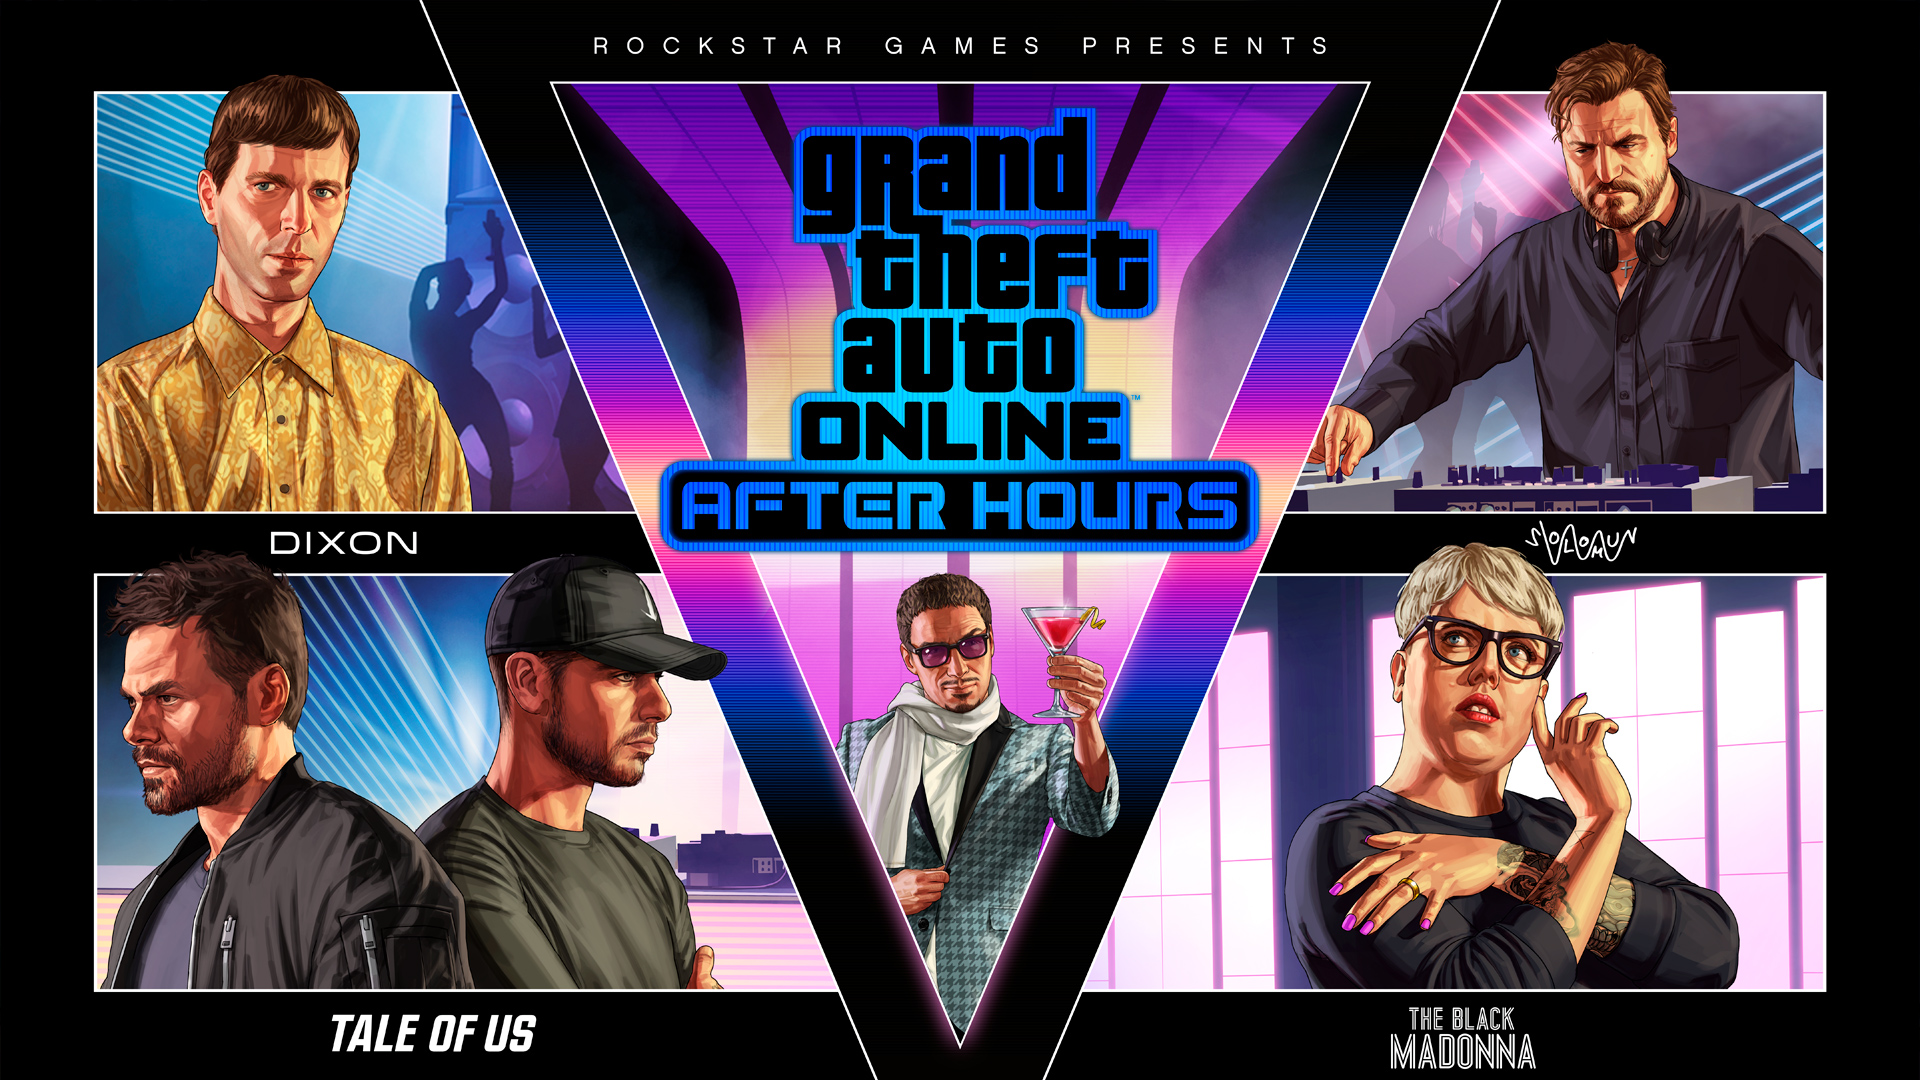 Download patch 1.0.1493.0 «After Hours» for GTA 5 Online